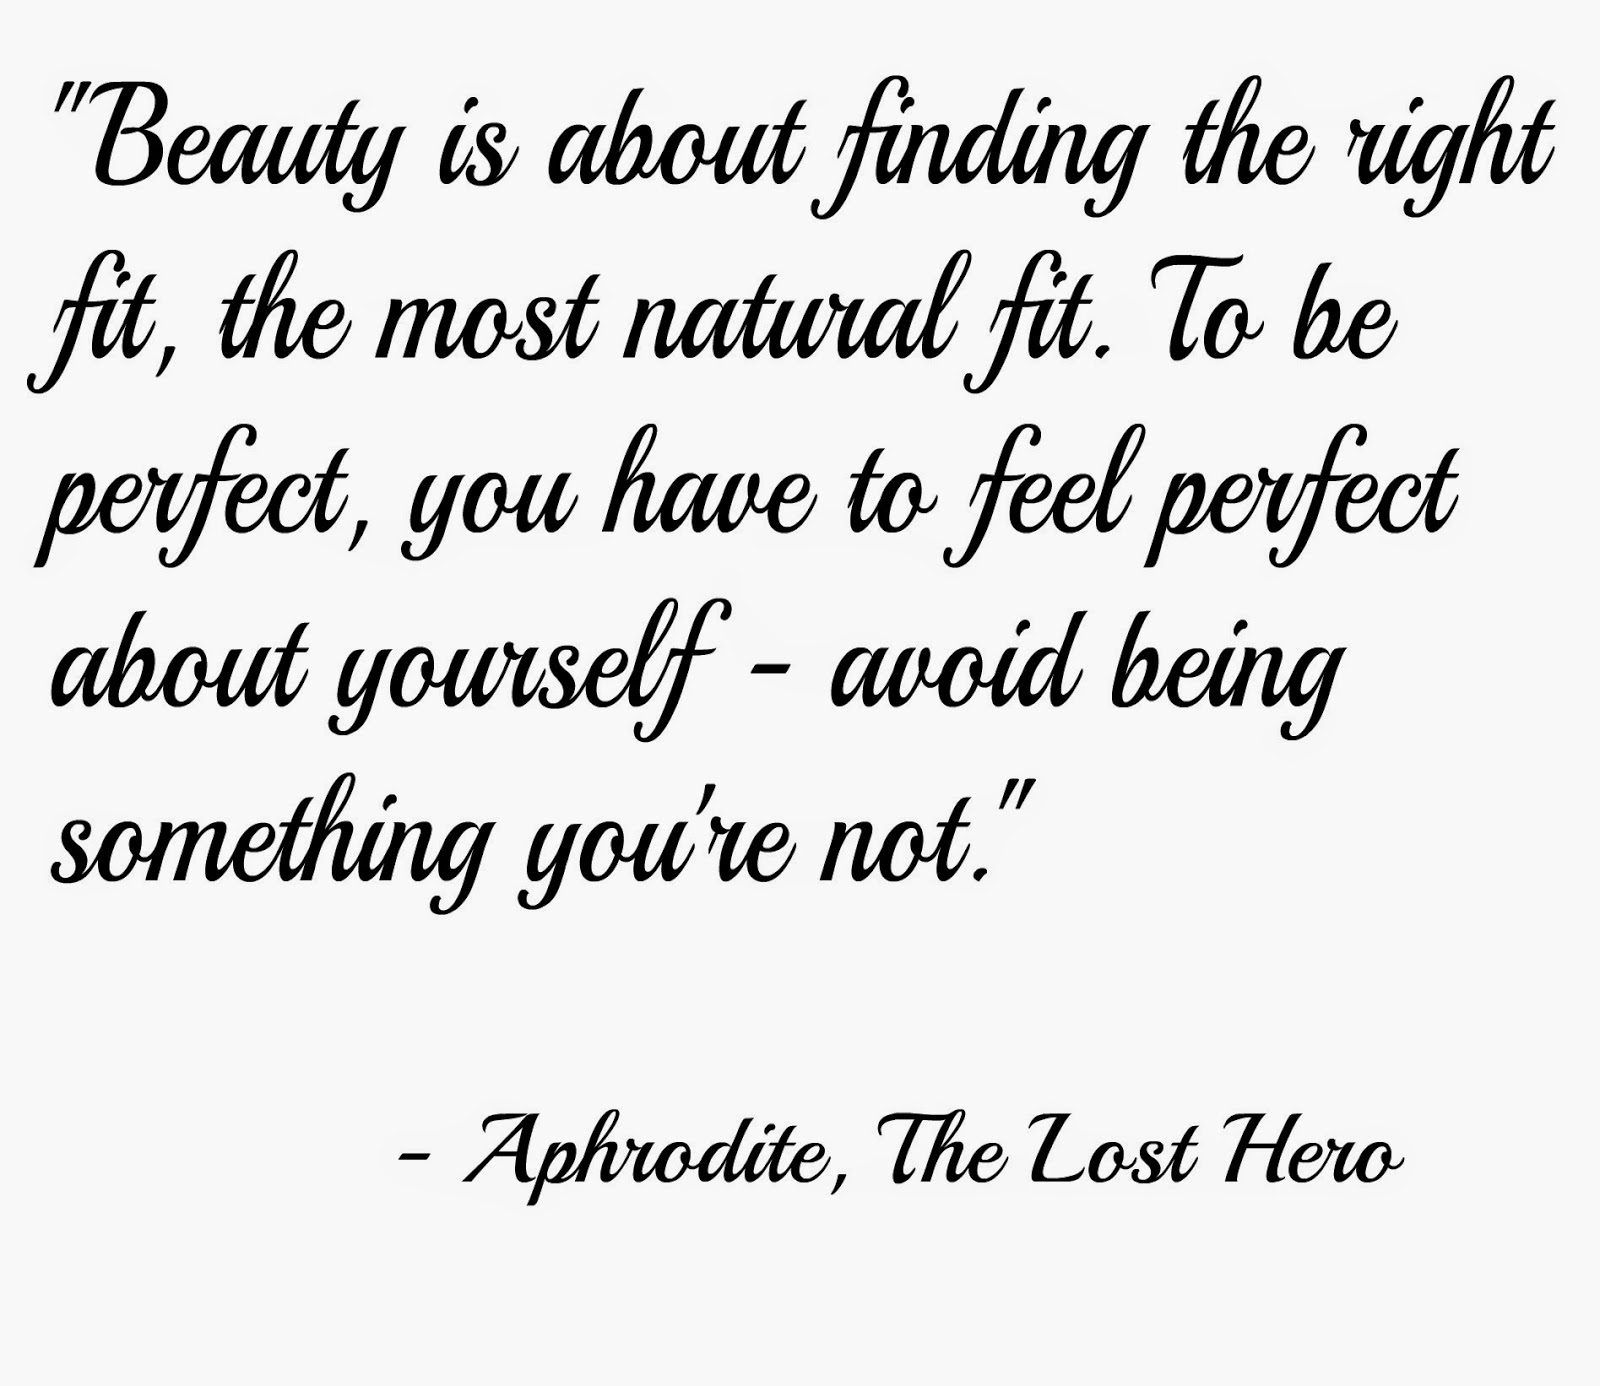 Beauty is about finding the right fit, the most natural fit, To be perfect, you have to feel perfect about yourself - avoid trying to be something you're not. Aphrodite, The Lost Hero